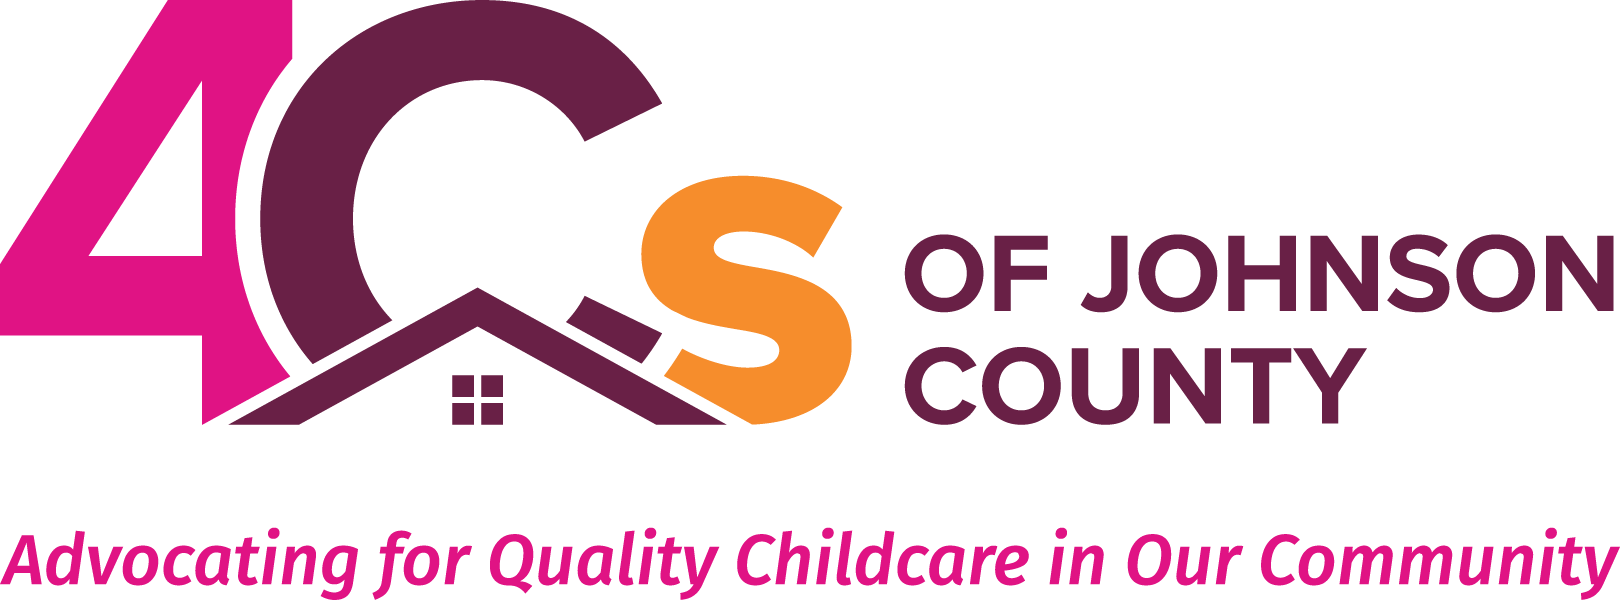 4Cs Community Coordinated Child Care